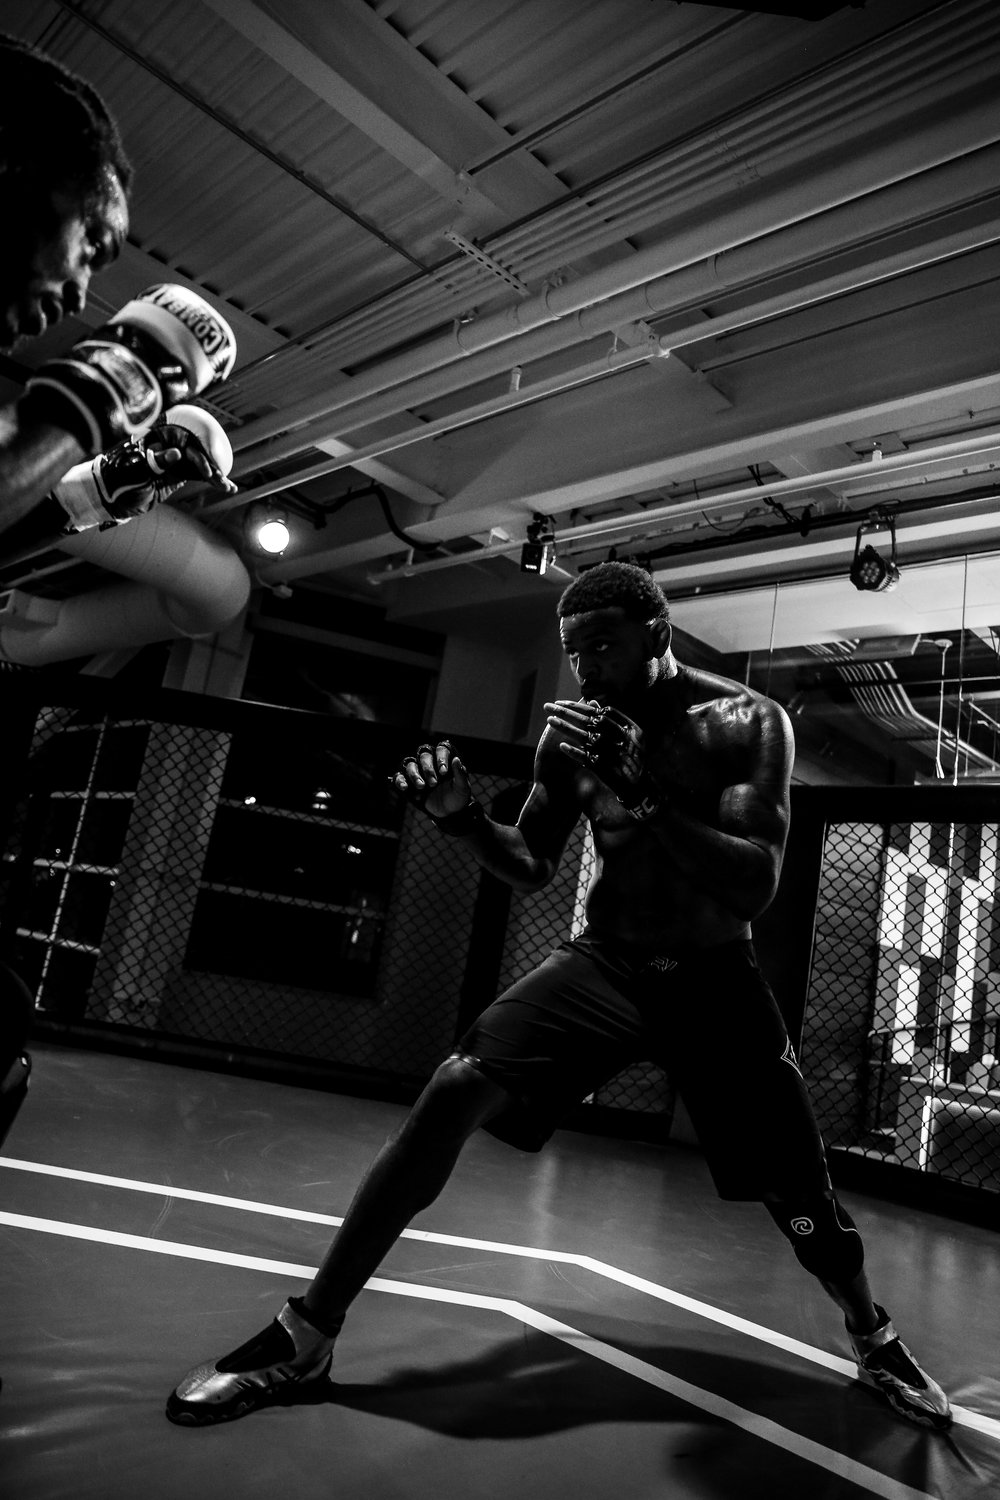 Michael Johnson training at the UFC Performance Institute, just days before his epic FOTY candidate with Justin Gaethje.